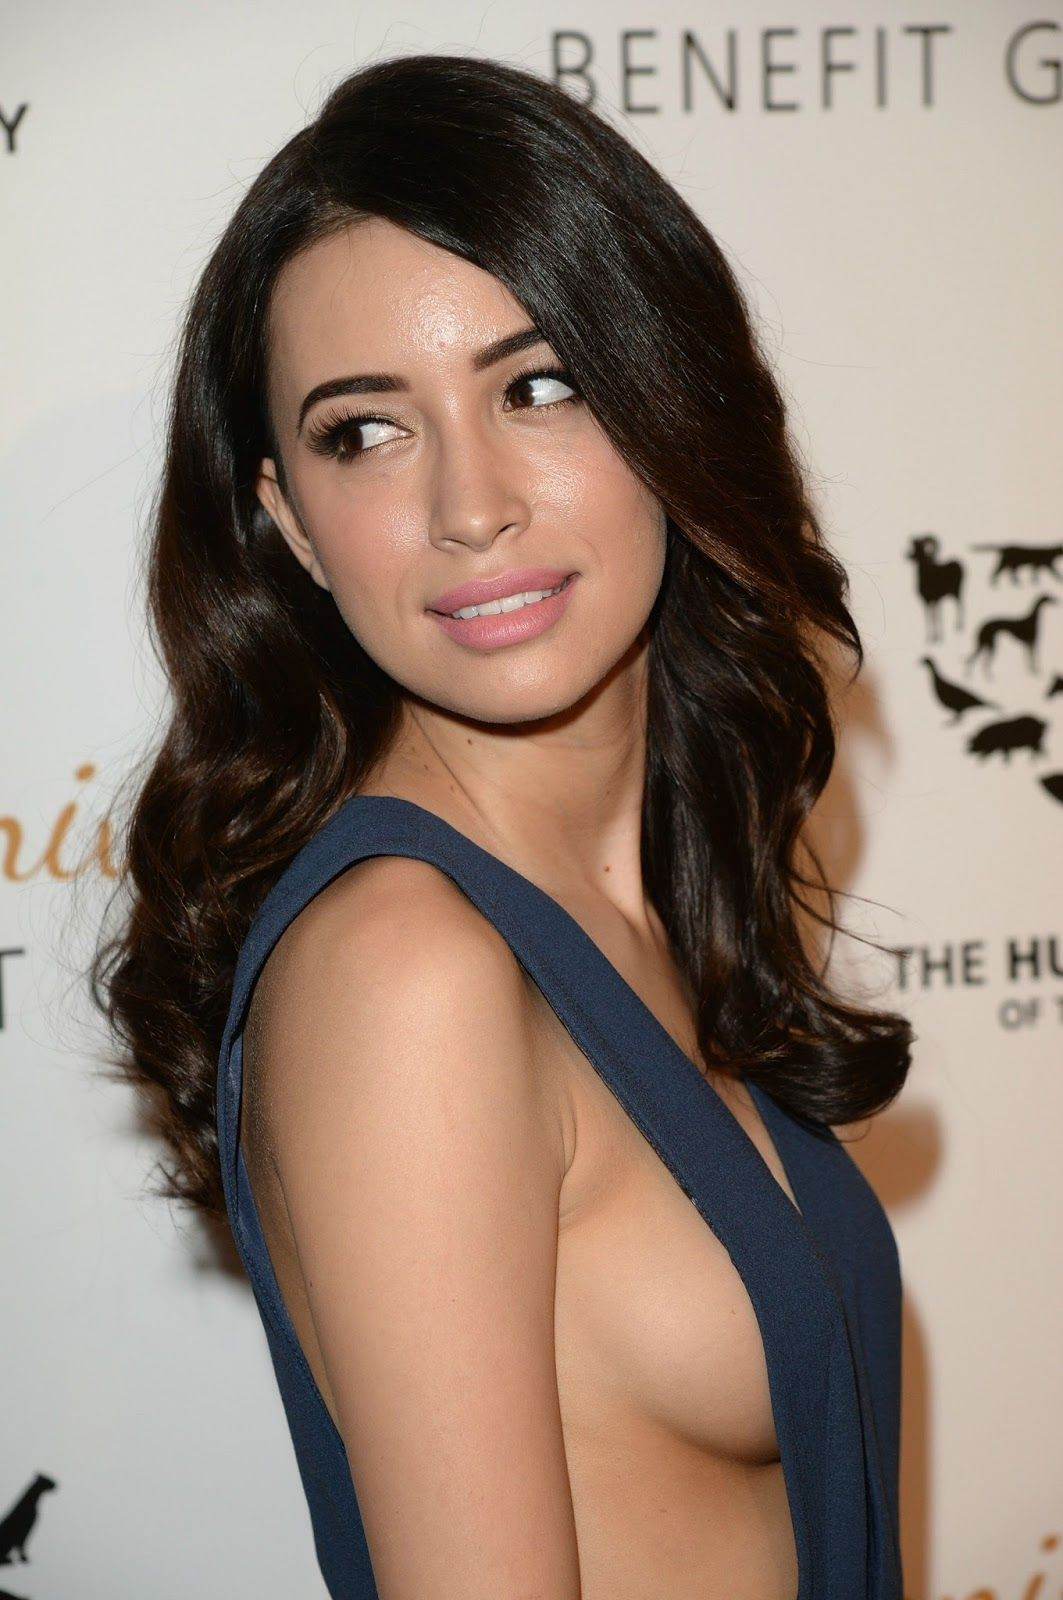 Celebrites Christian Serratos nude photos 2019